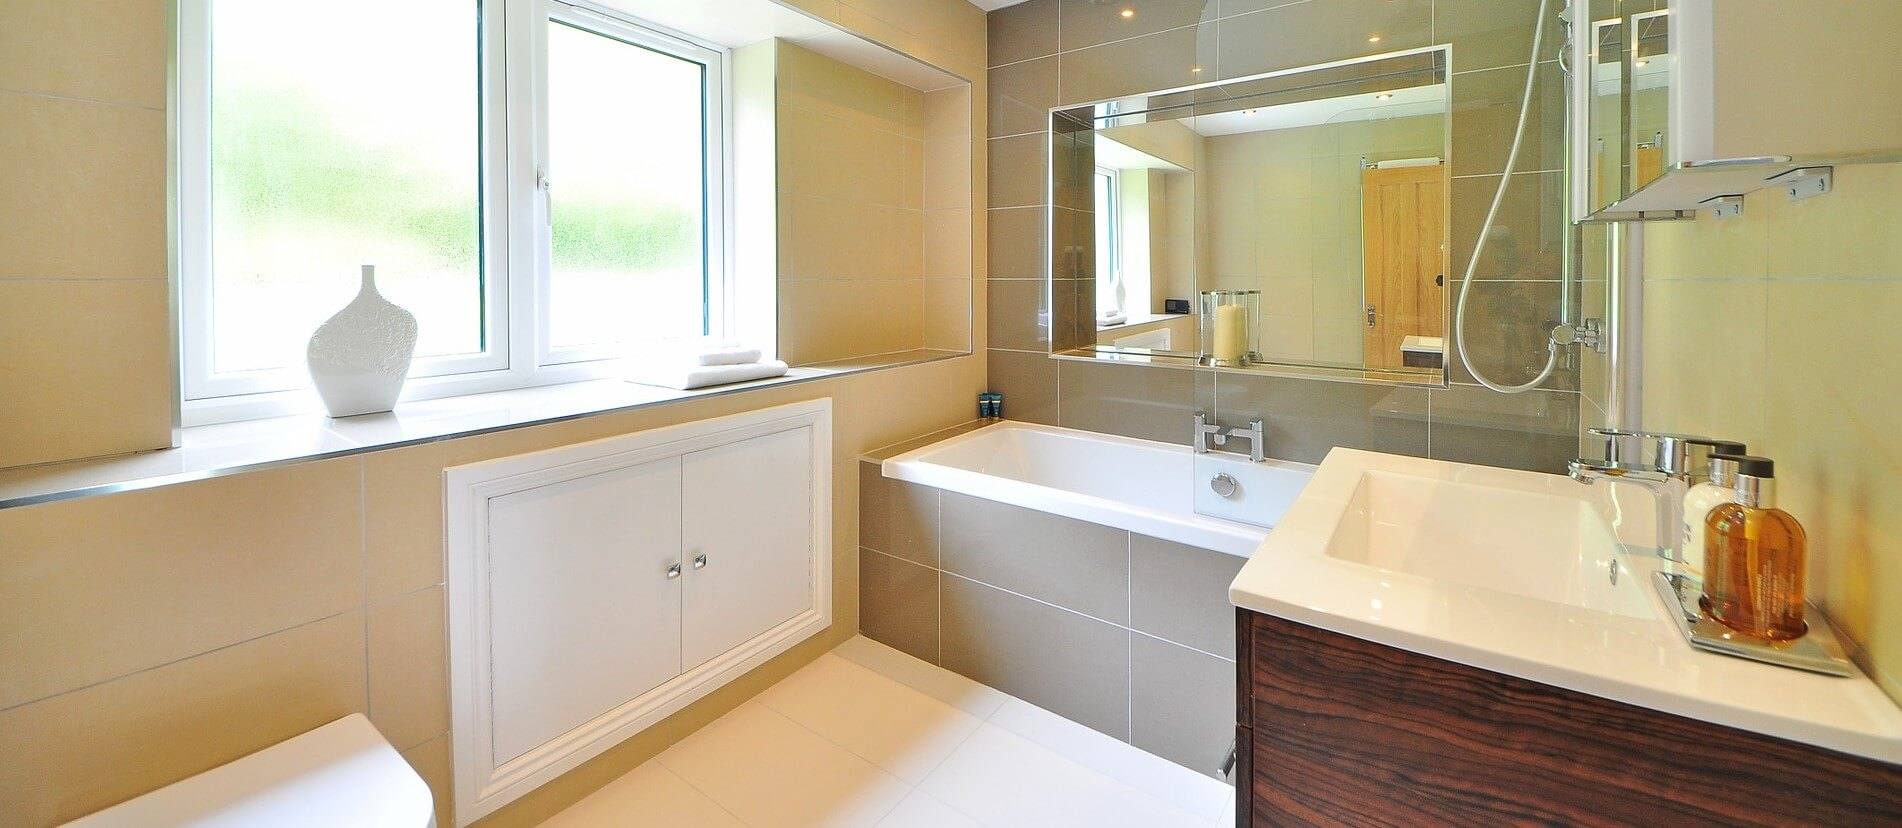 6 Bathroom Remodeling Tips: Professional Insights